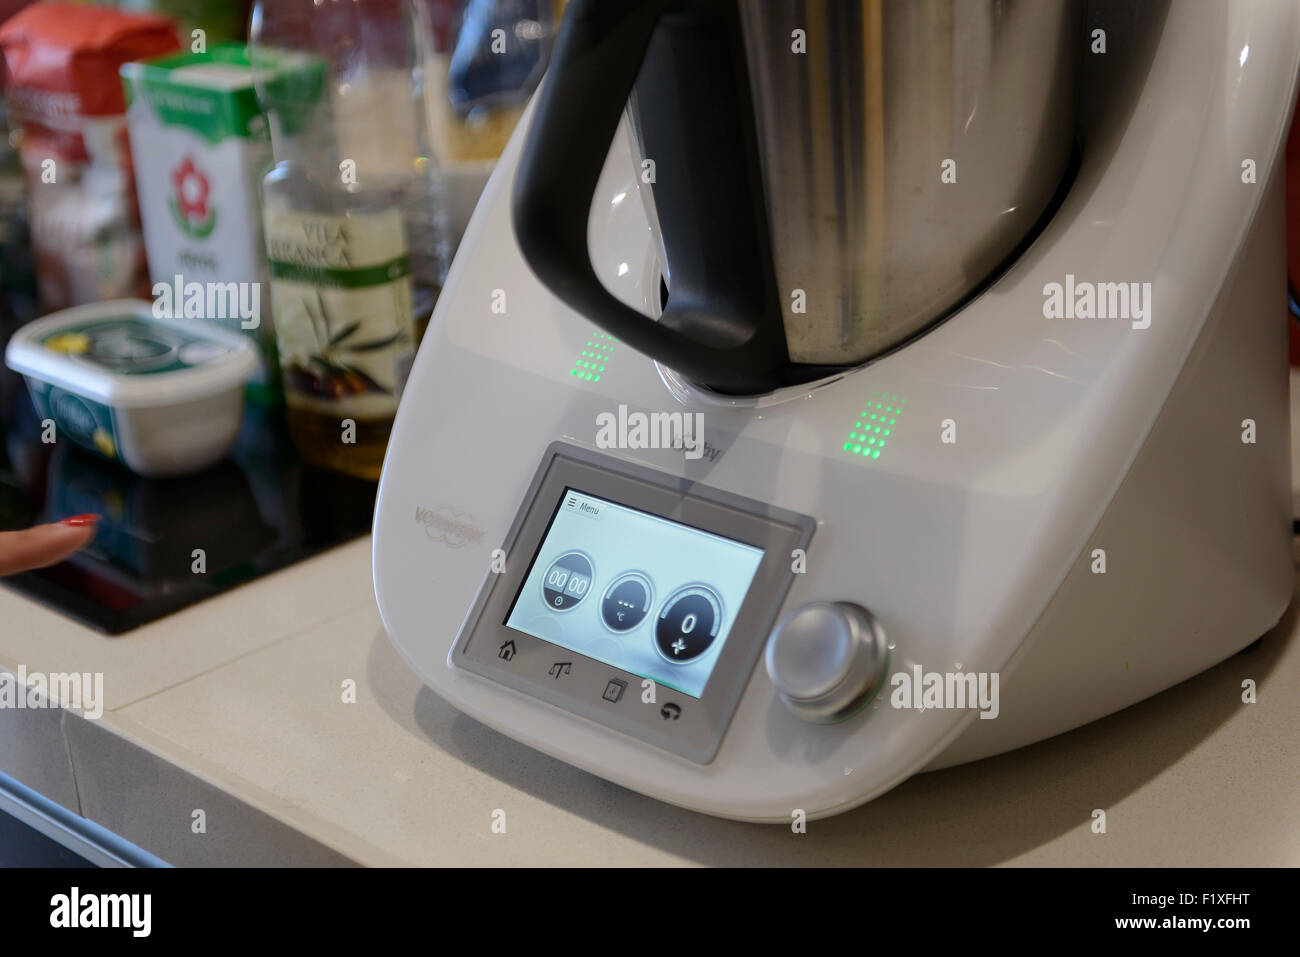 Vorwerk Thermomix TM5 food processor kitchen appliance - Stock Image